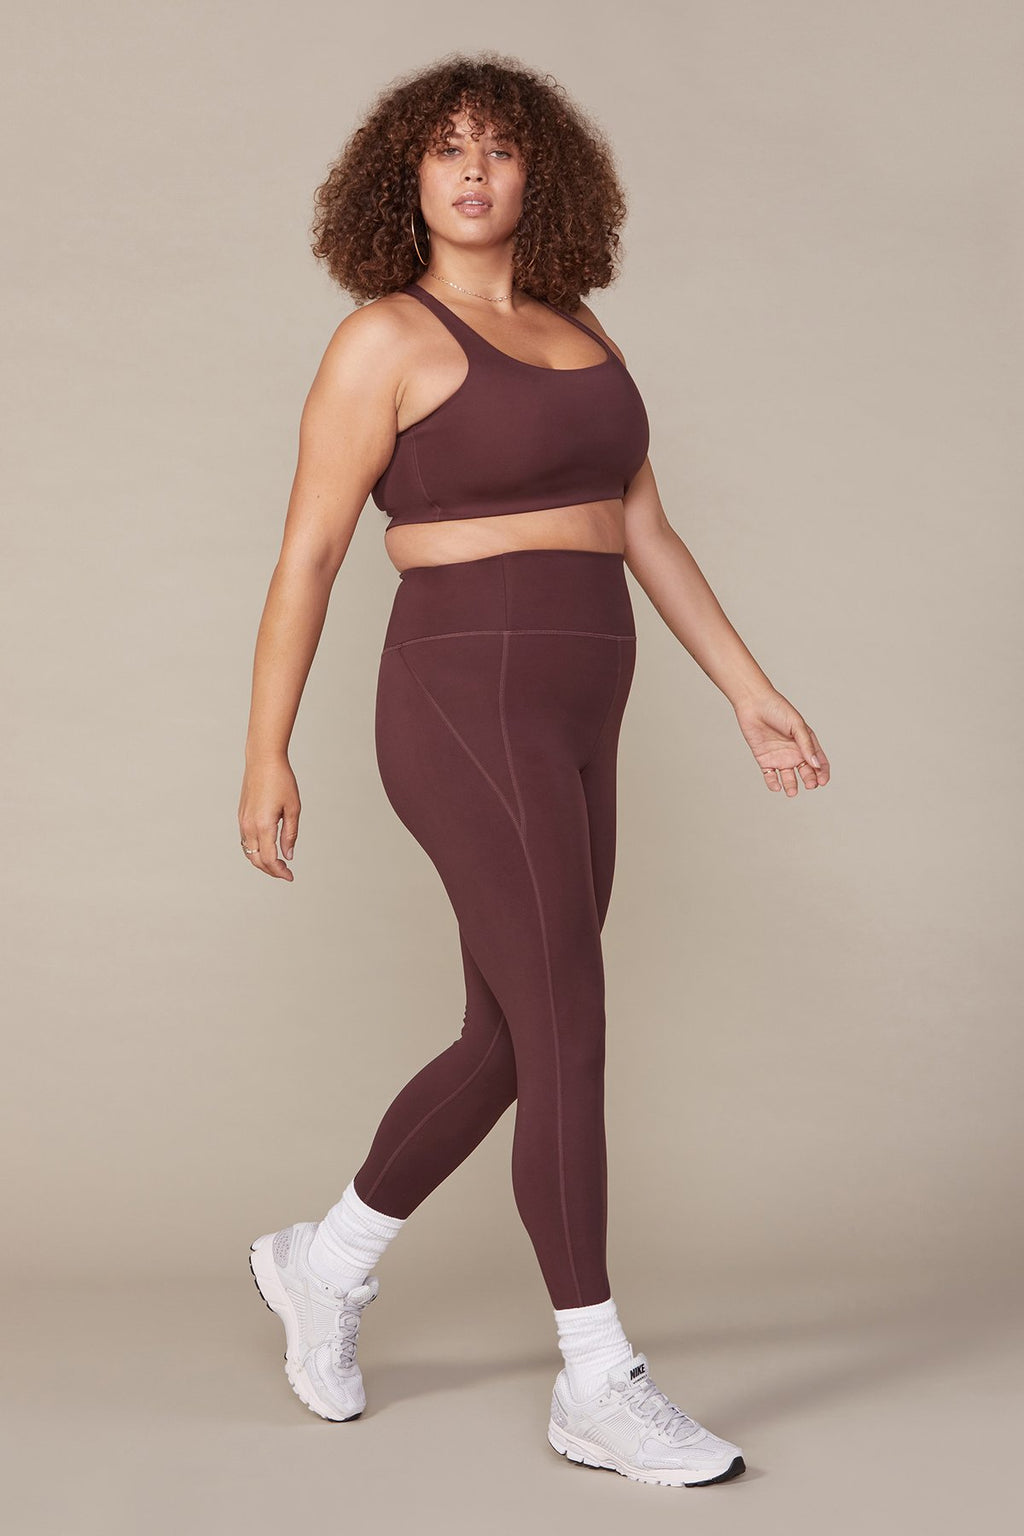 Girlfriend Collective - High Rise Classic Leggings - Cocoa - Galz